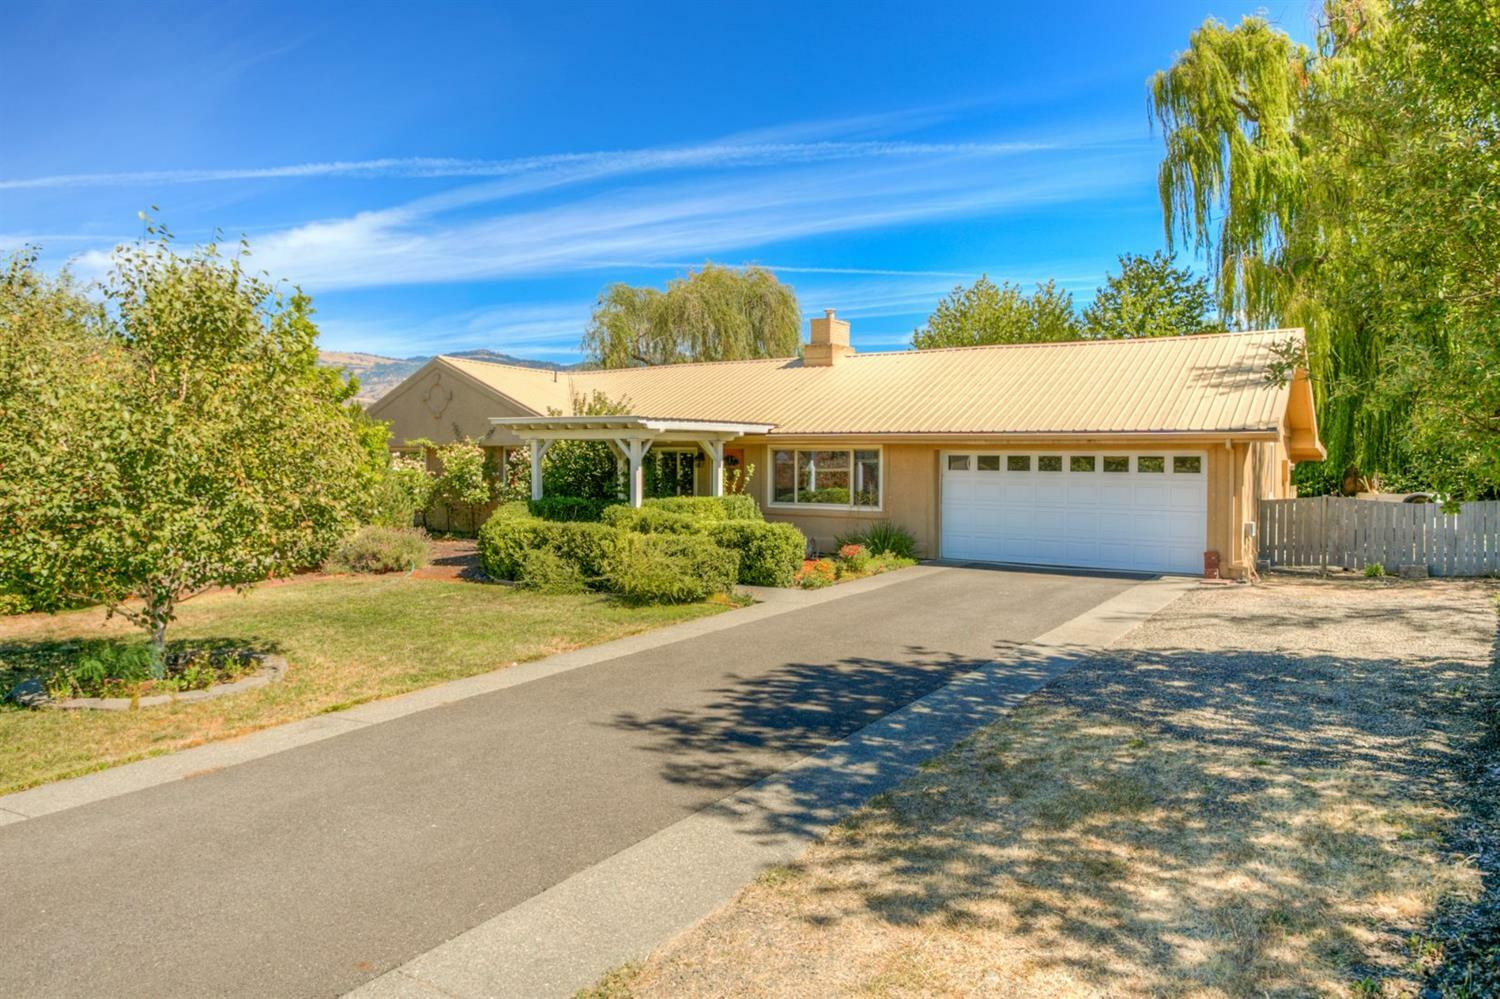 202 Meadow Slope Drive, Talent, OR - USA (photo 1)